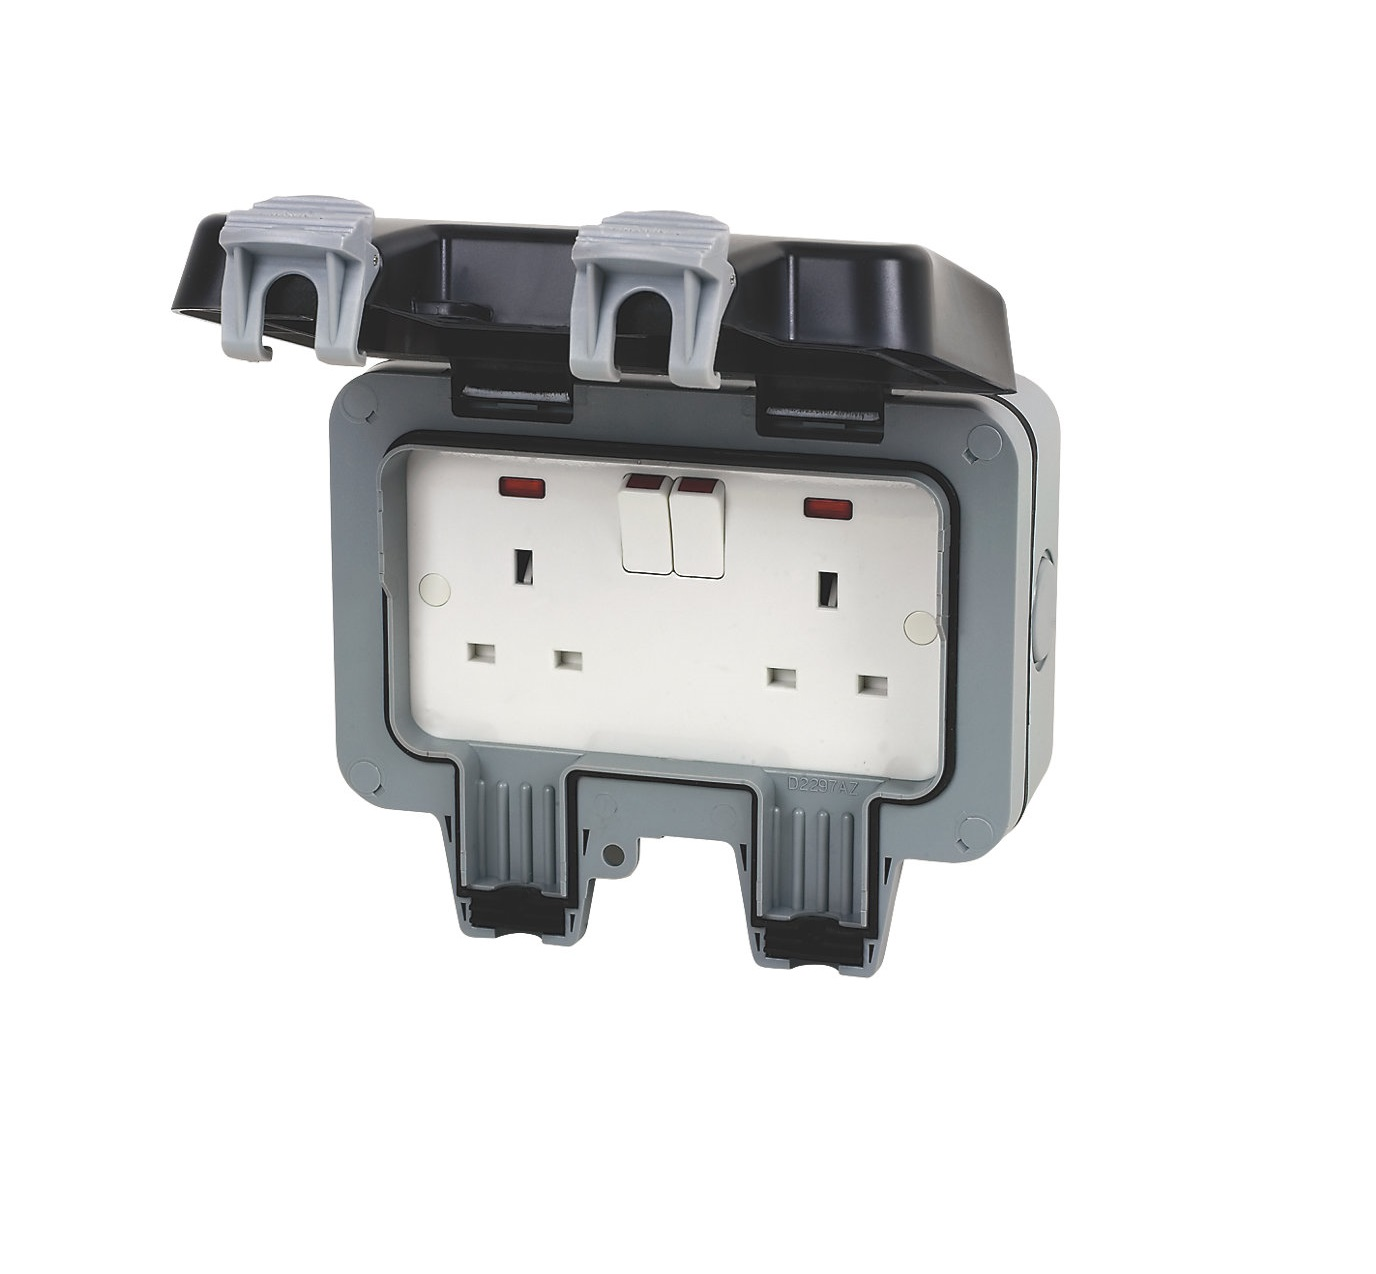 Bg Wp22 Outdoor Weatherproof Double Switched Socket Grey 13 Amp Ip66 Wiring Accessories 2